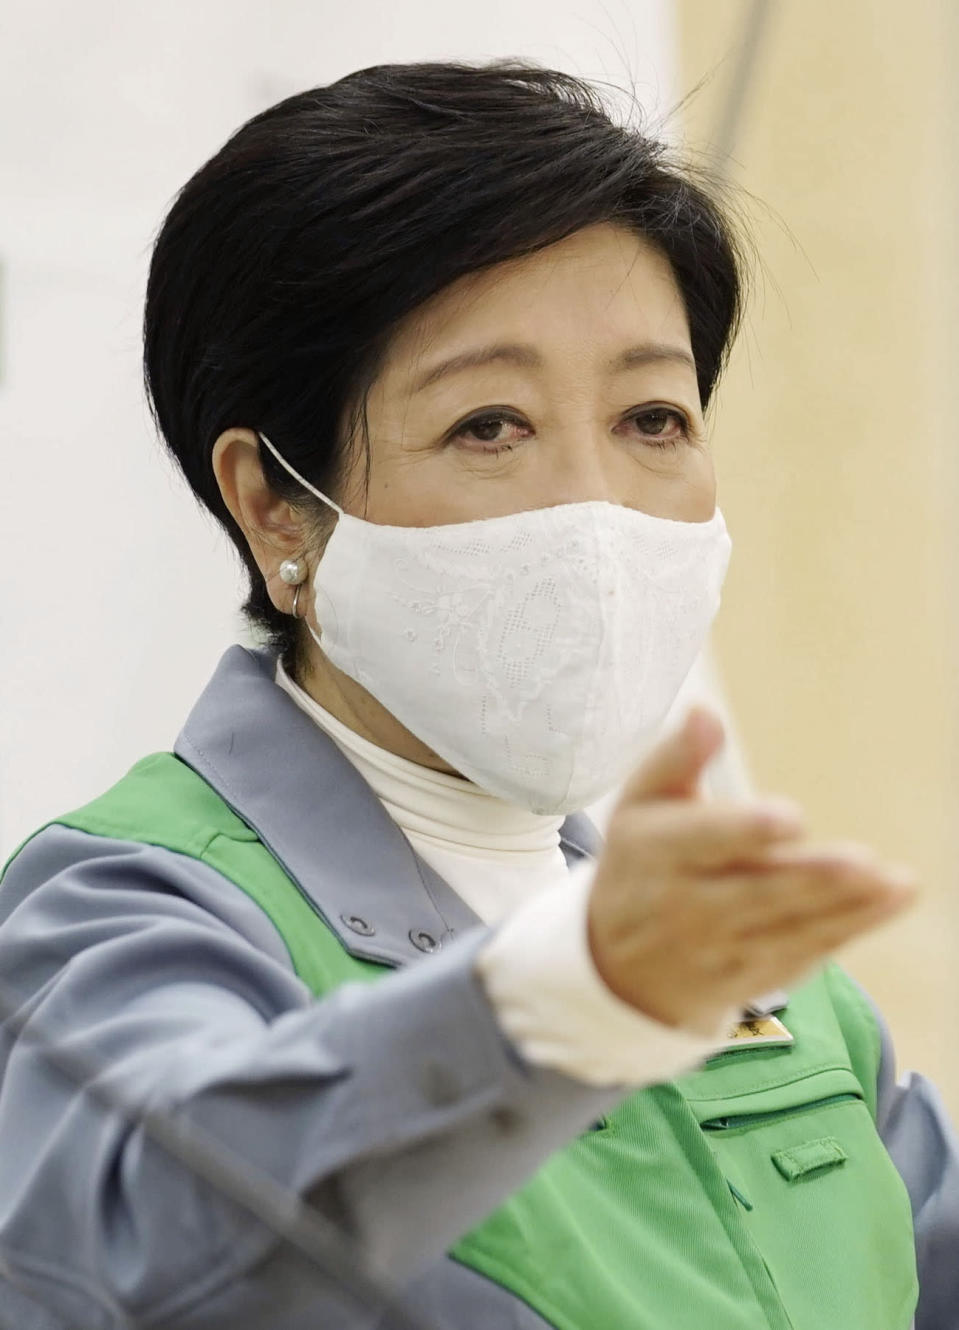 Tokyo Gov. Yuriko Koike wearing a face mask speaks during an unscheduled news conference at Tokyo Metropolitan Government Building in Tokyo Wednesday, Dec. 30, 2020. Tokyo's ongoing upsurge is bigger than earlier infection waves and could turn explosive any time, Koike told, as the Japanese capital reported 944 new cases, its second highest since the pandemic began. (Chika Oshima/Kyodo News via AP)